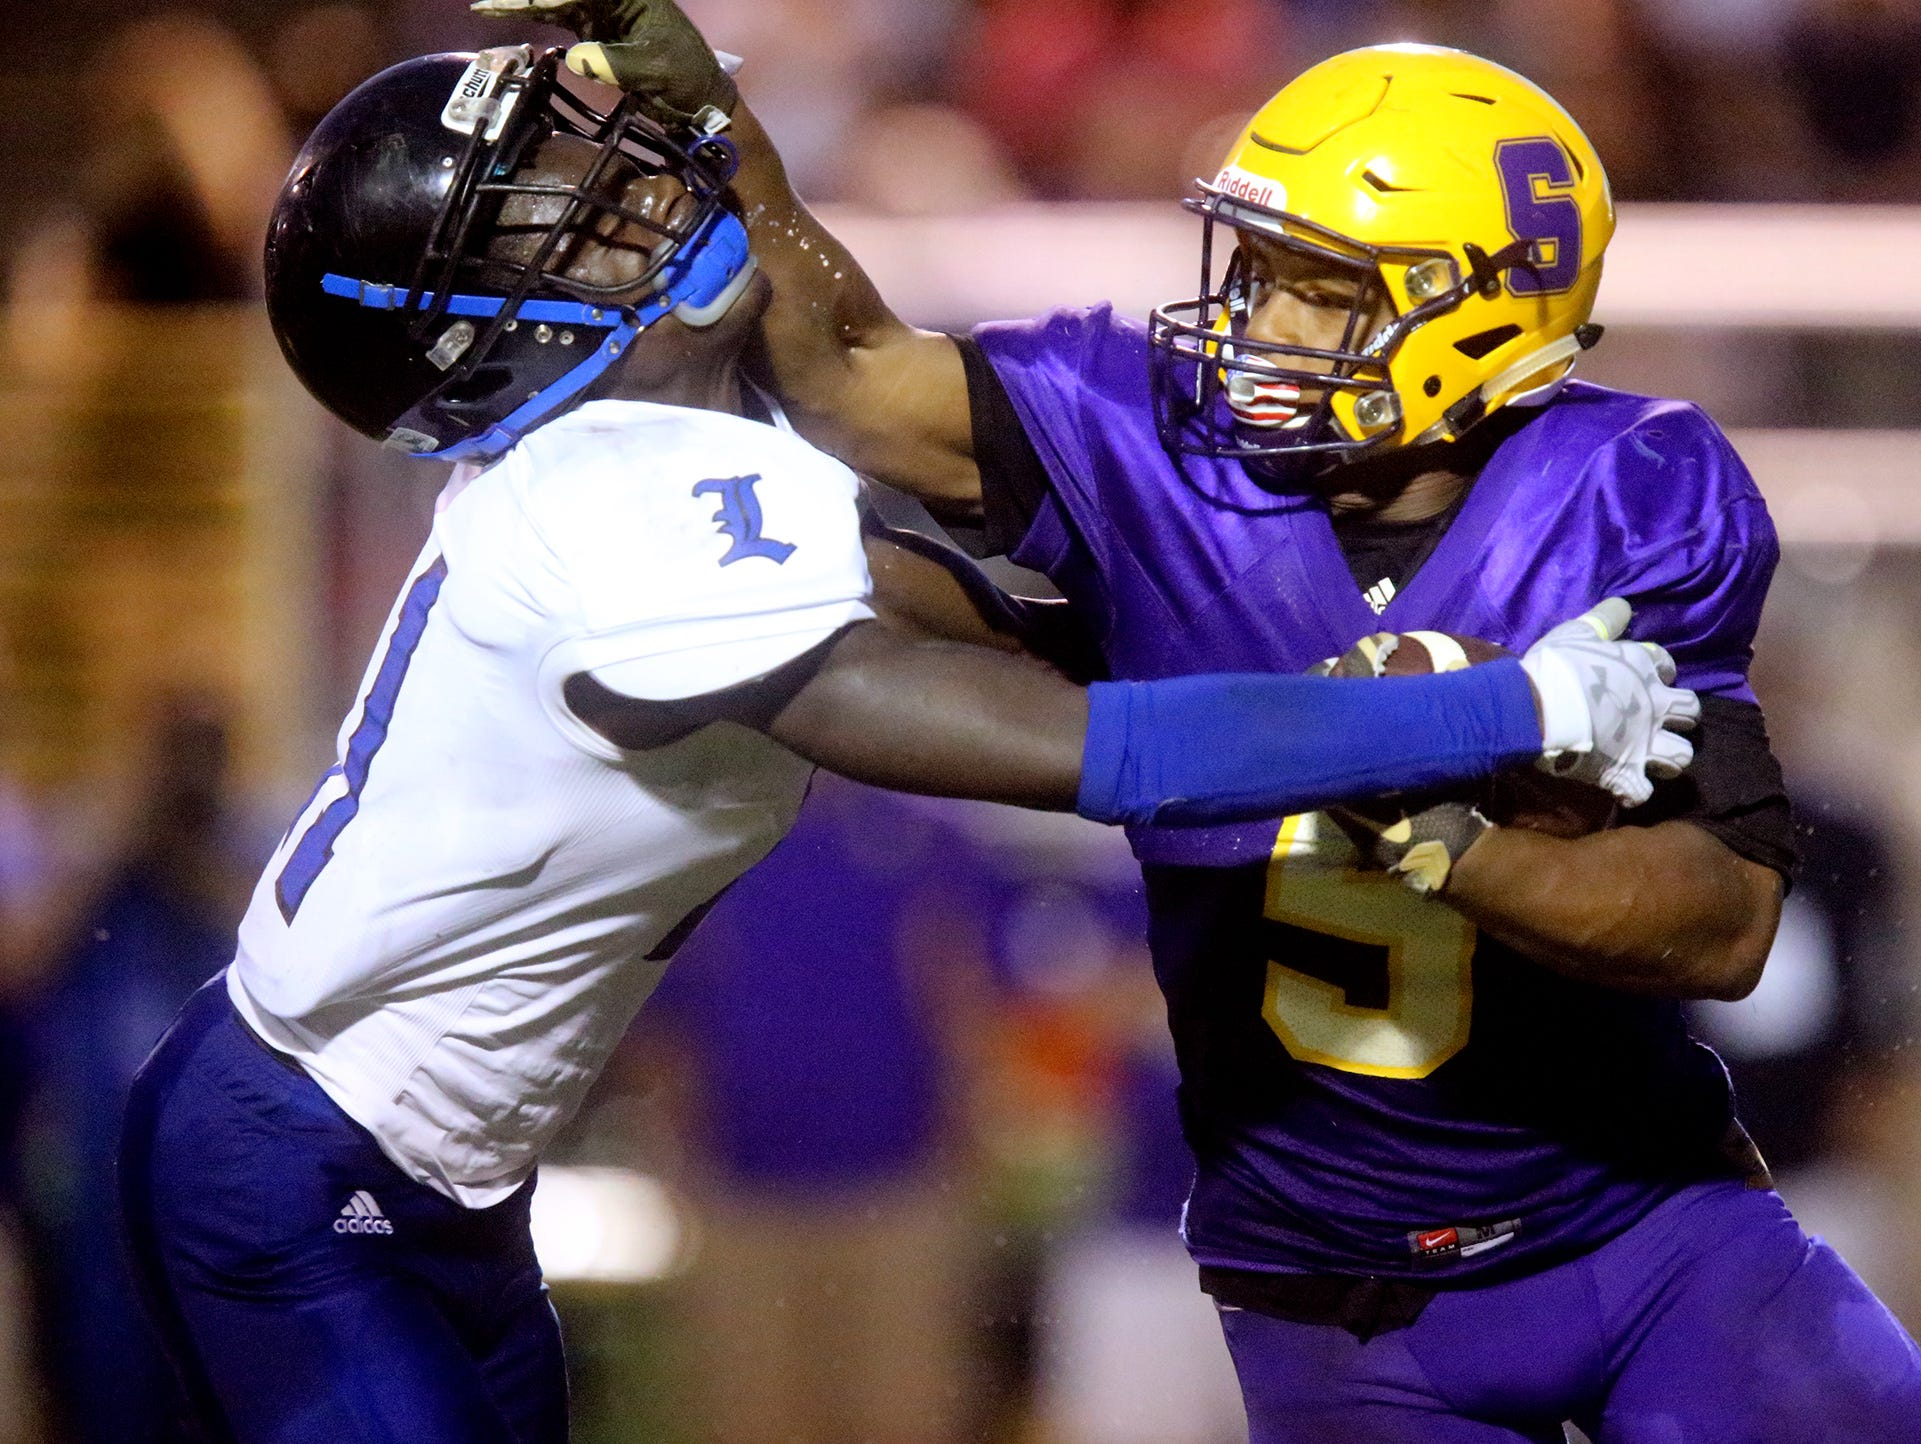 Smyrna's Casey Perkins (5) defends himself against La Vergne's Joevonte Norfork (11) as Casey runs the ball down the field during game one at Smyrna on Friday, Aug. 12, 2016.